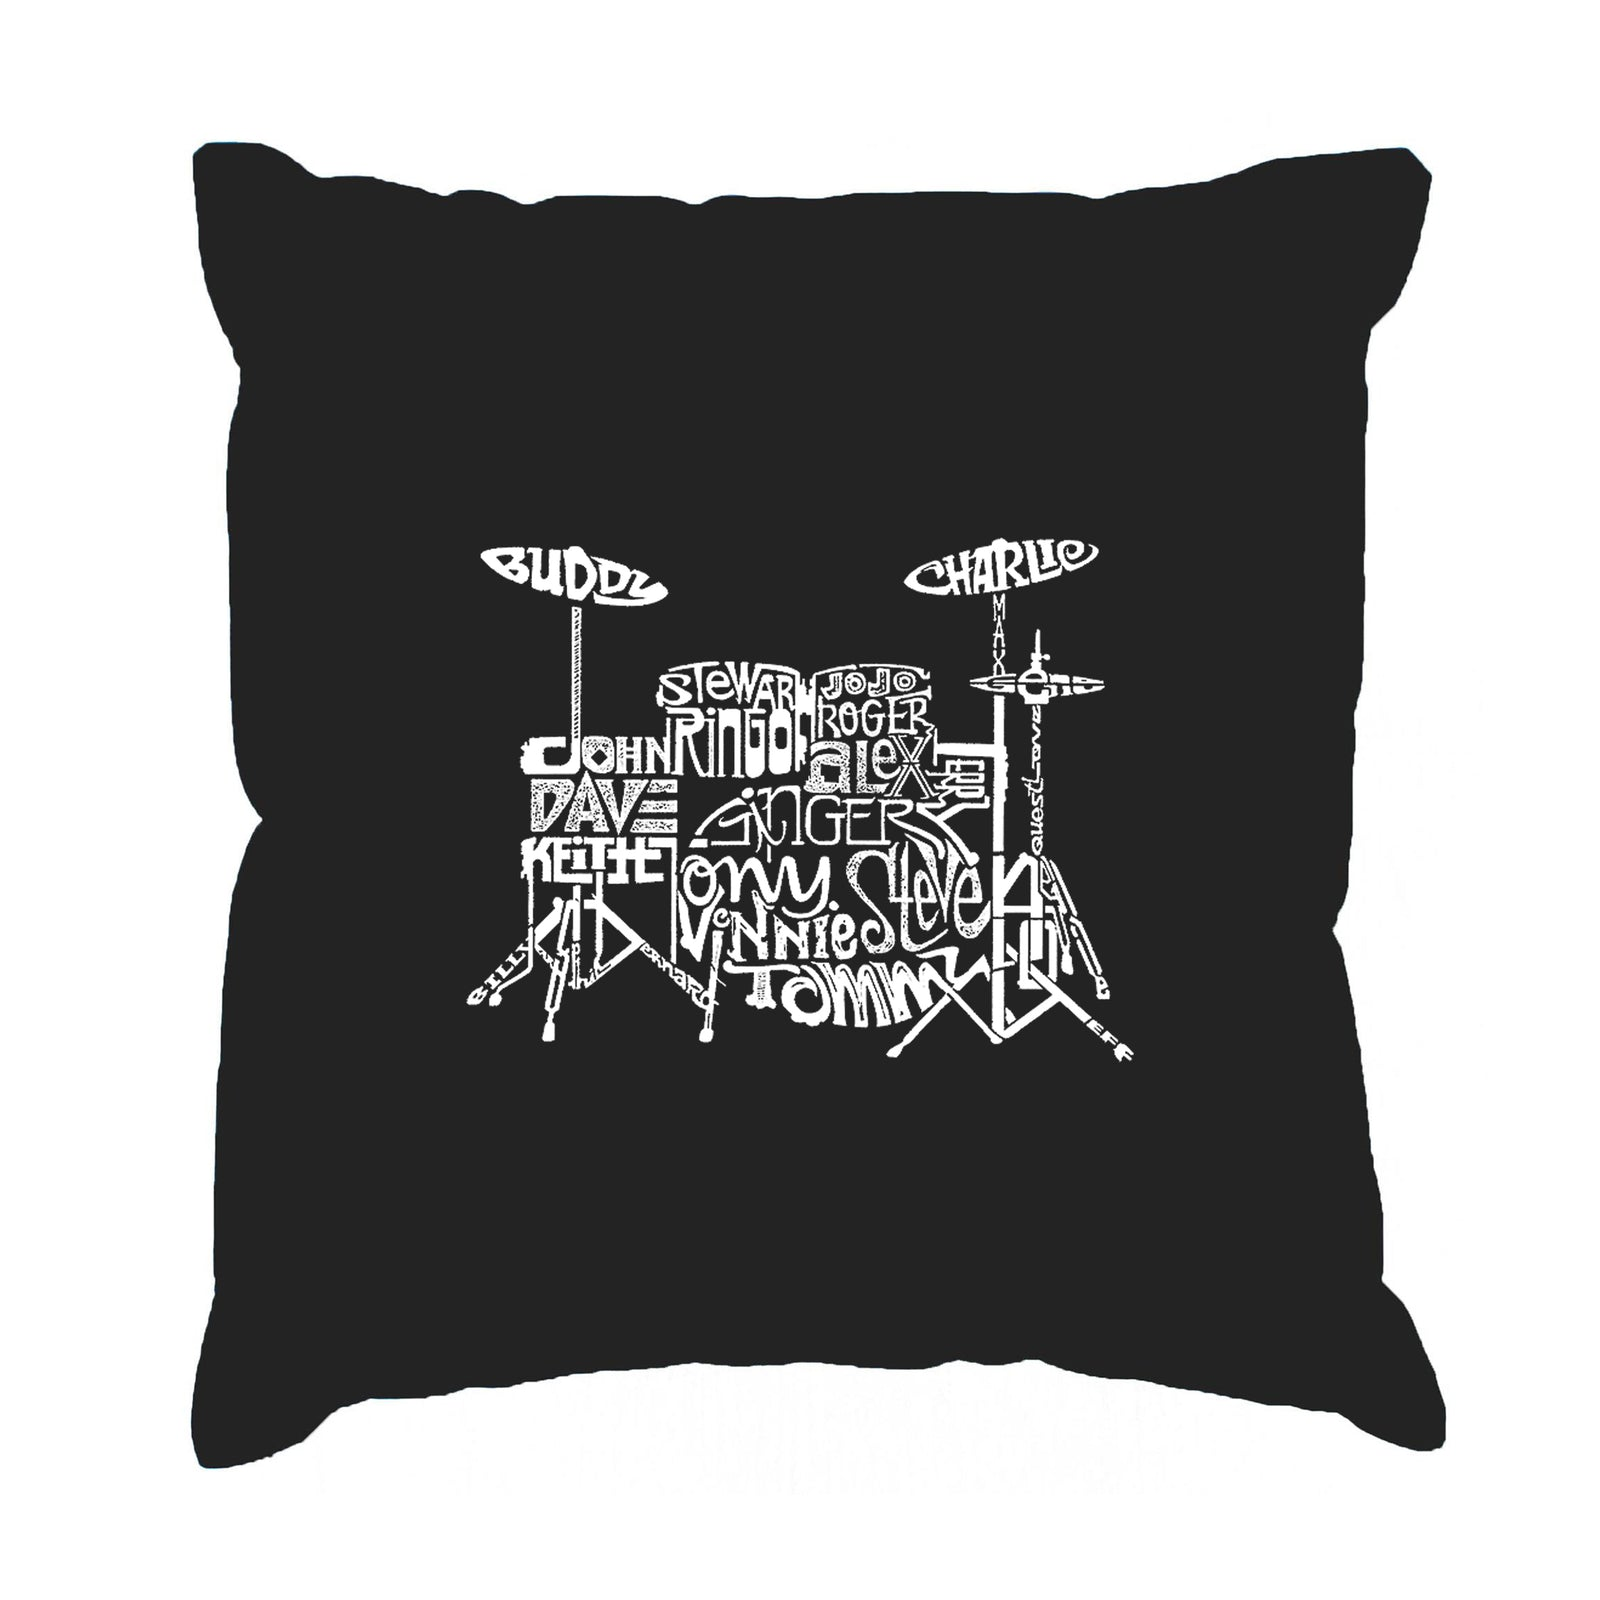 Throw Pillow Cover - Word Art - Drums